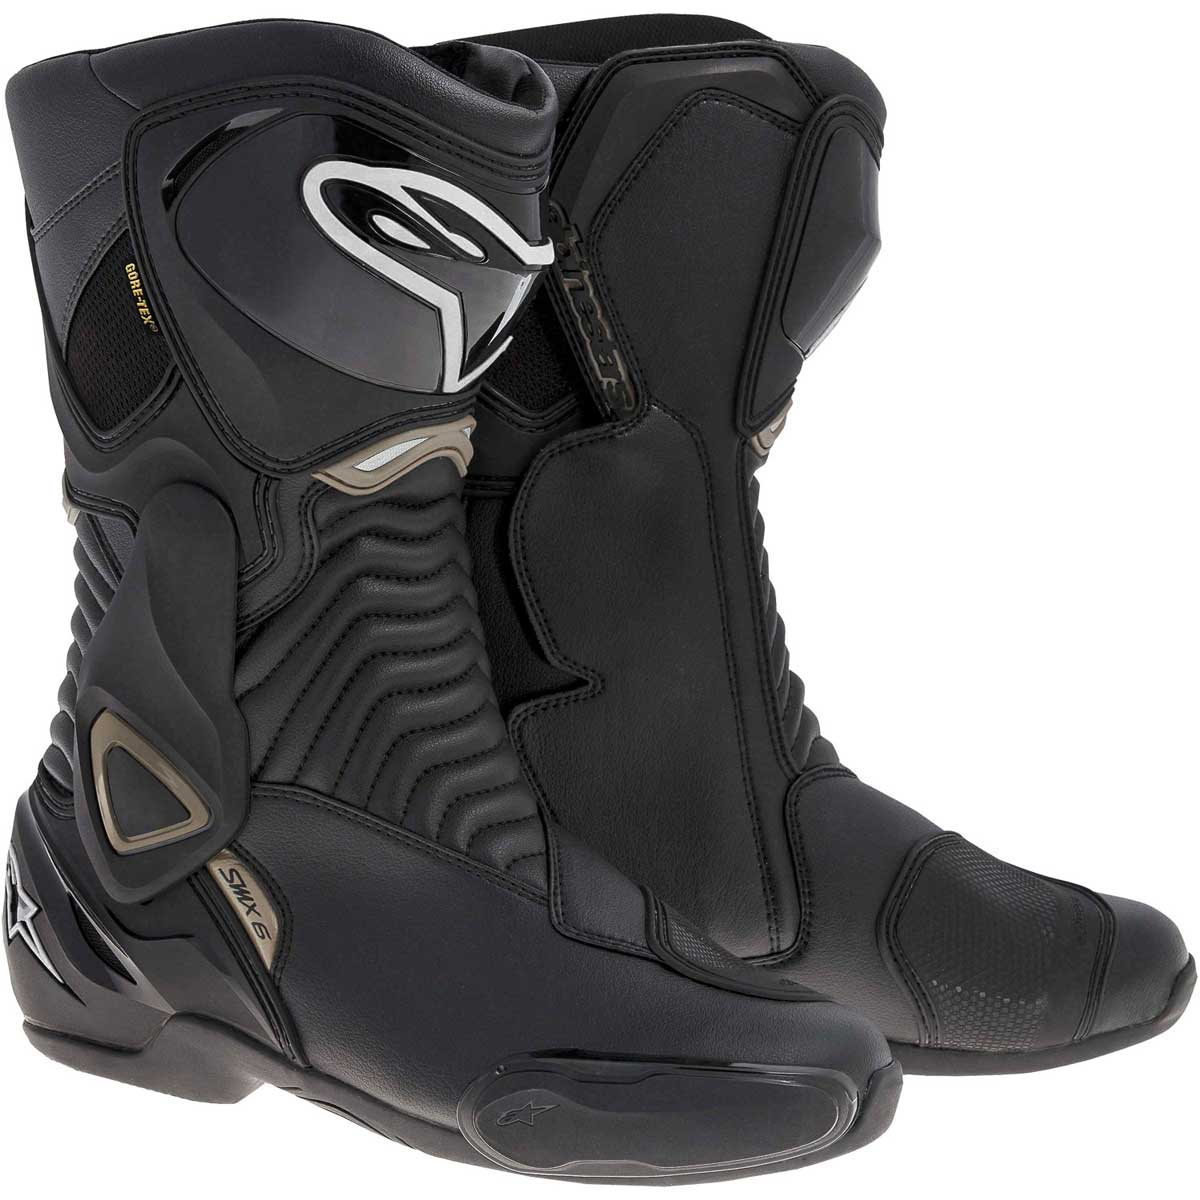 The Alpinestars S-MX 6 Gore-Tex Boots: Top 10 Best Sportsbike & Racing Motorcycle Boot